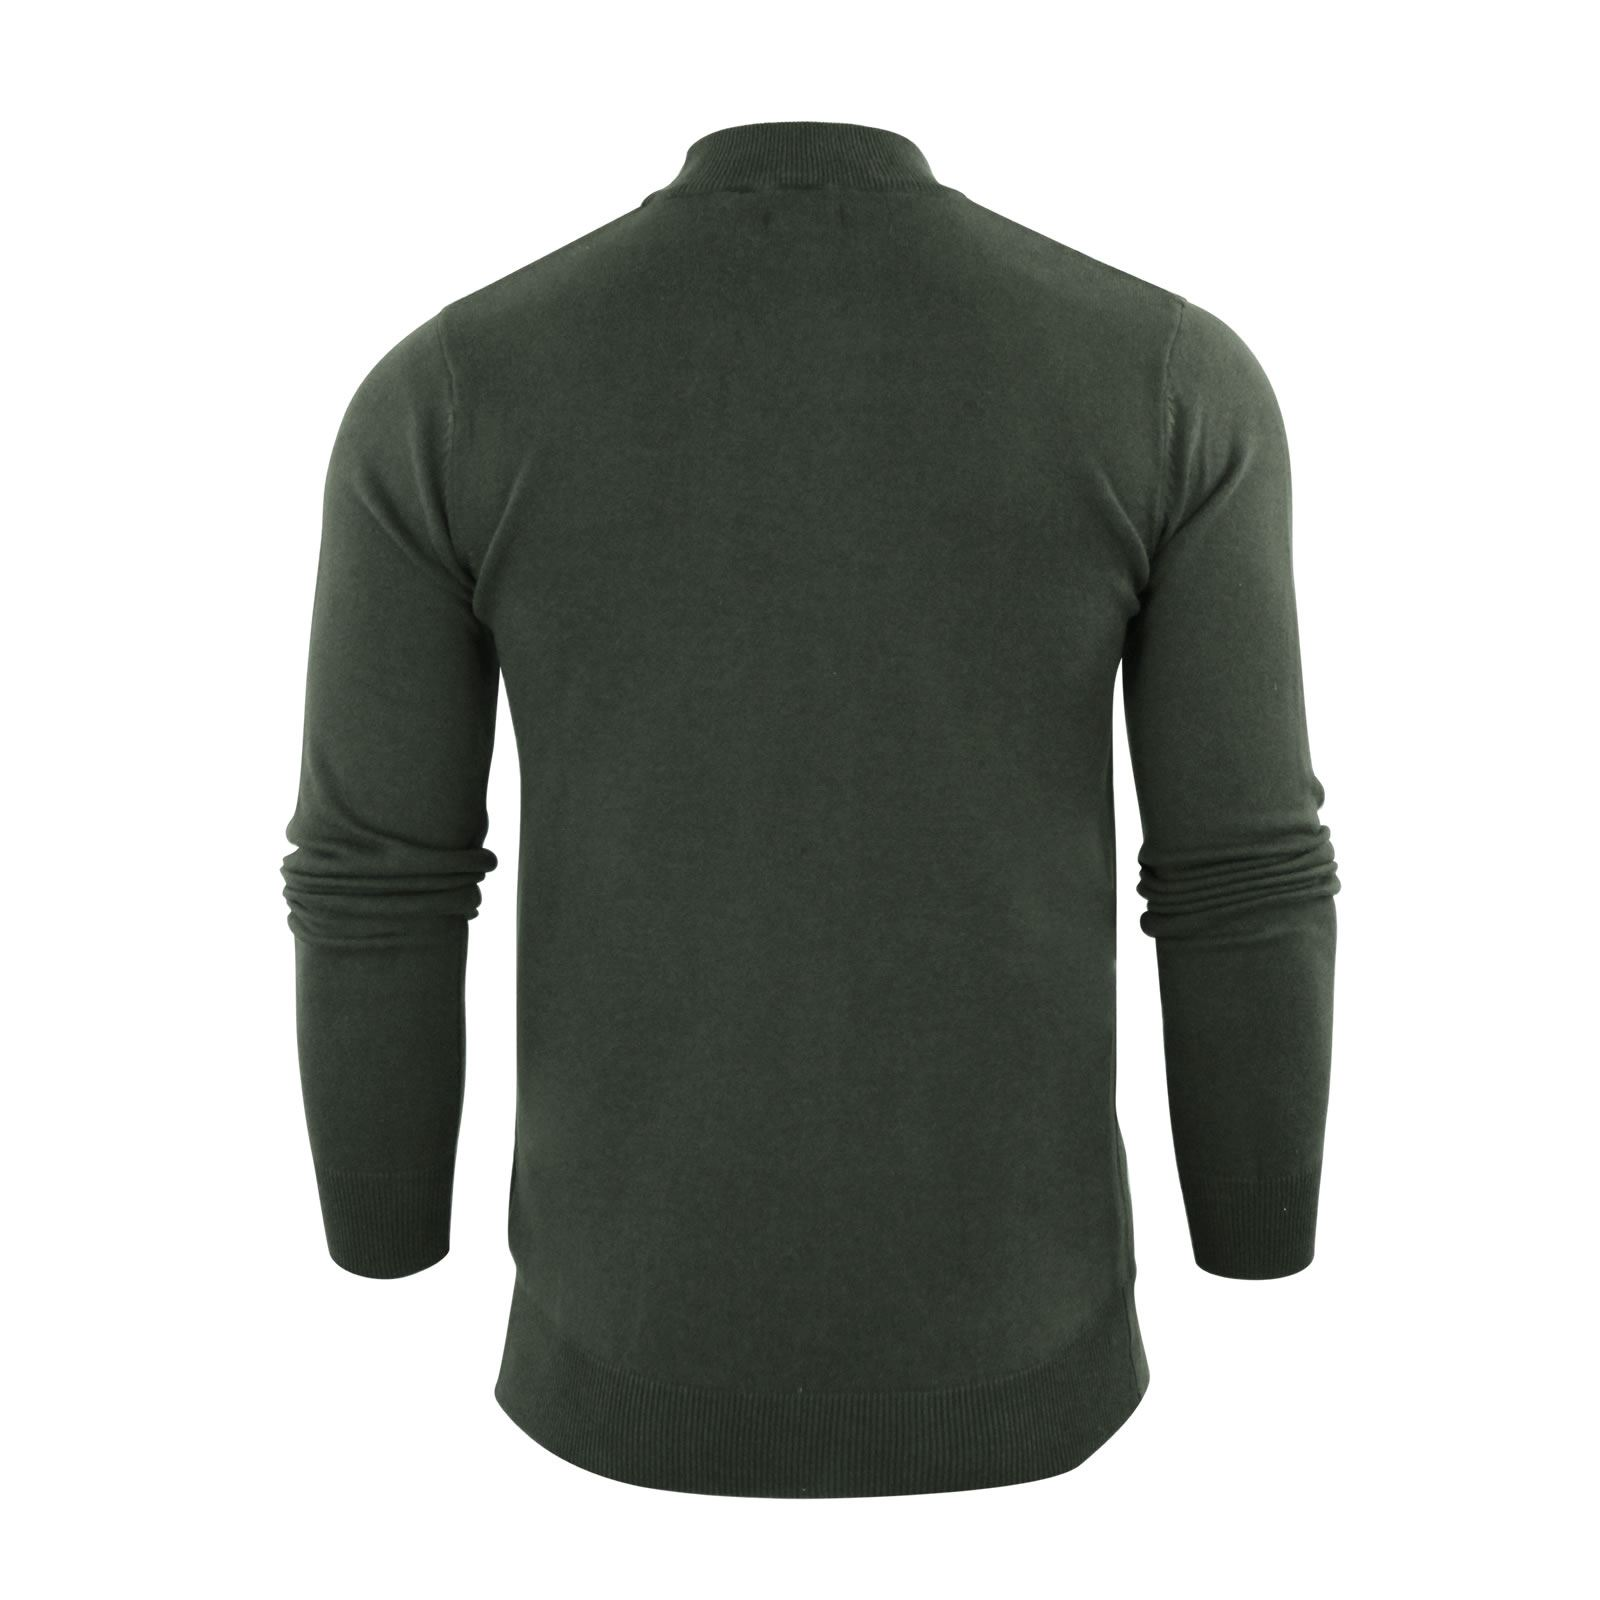 Mens-Jumper-Brave-Soul-Turtle-Neck-Cotton-Pull-Over-Sweater thumbnail 18